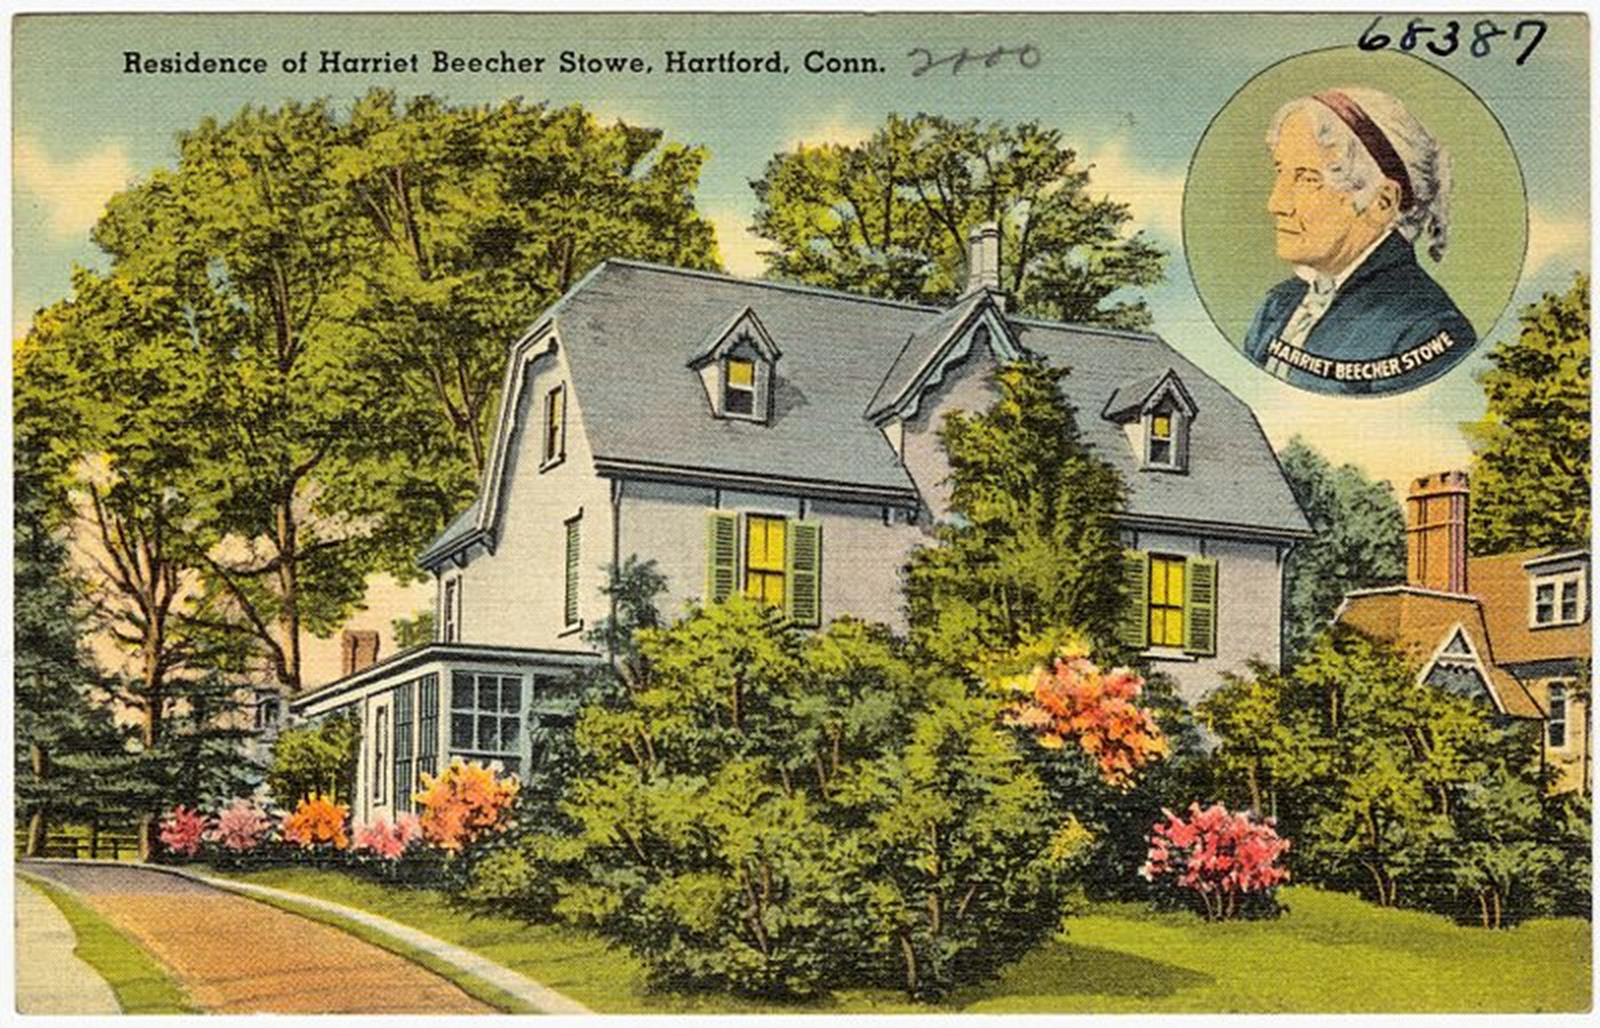 Residence of Harriet Beecher Stowe. Credit: Tichnor Brothers